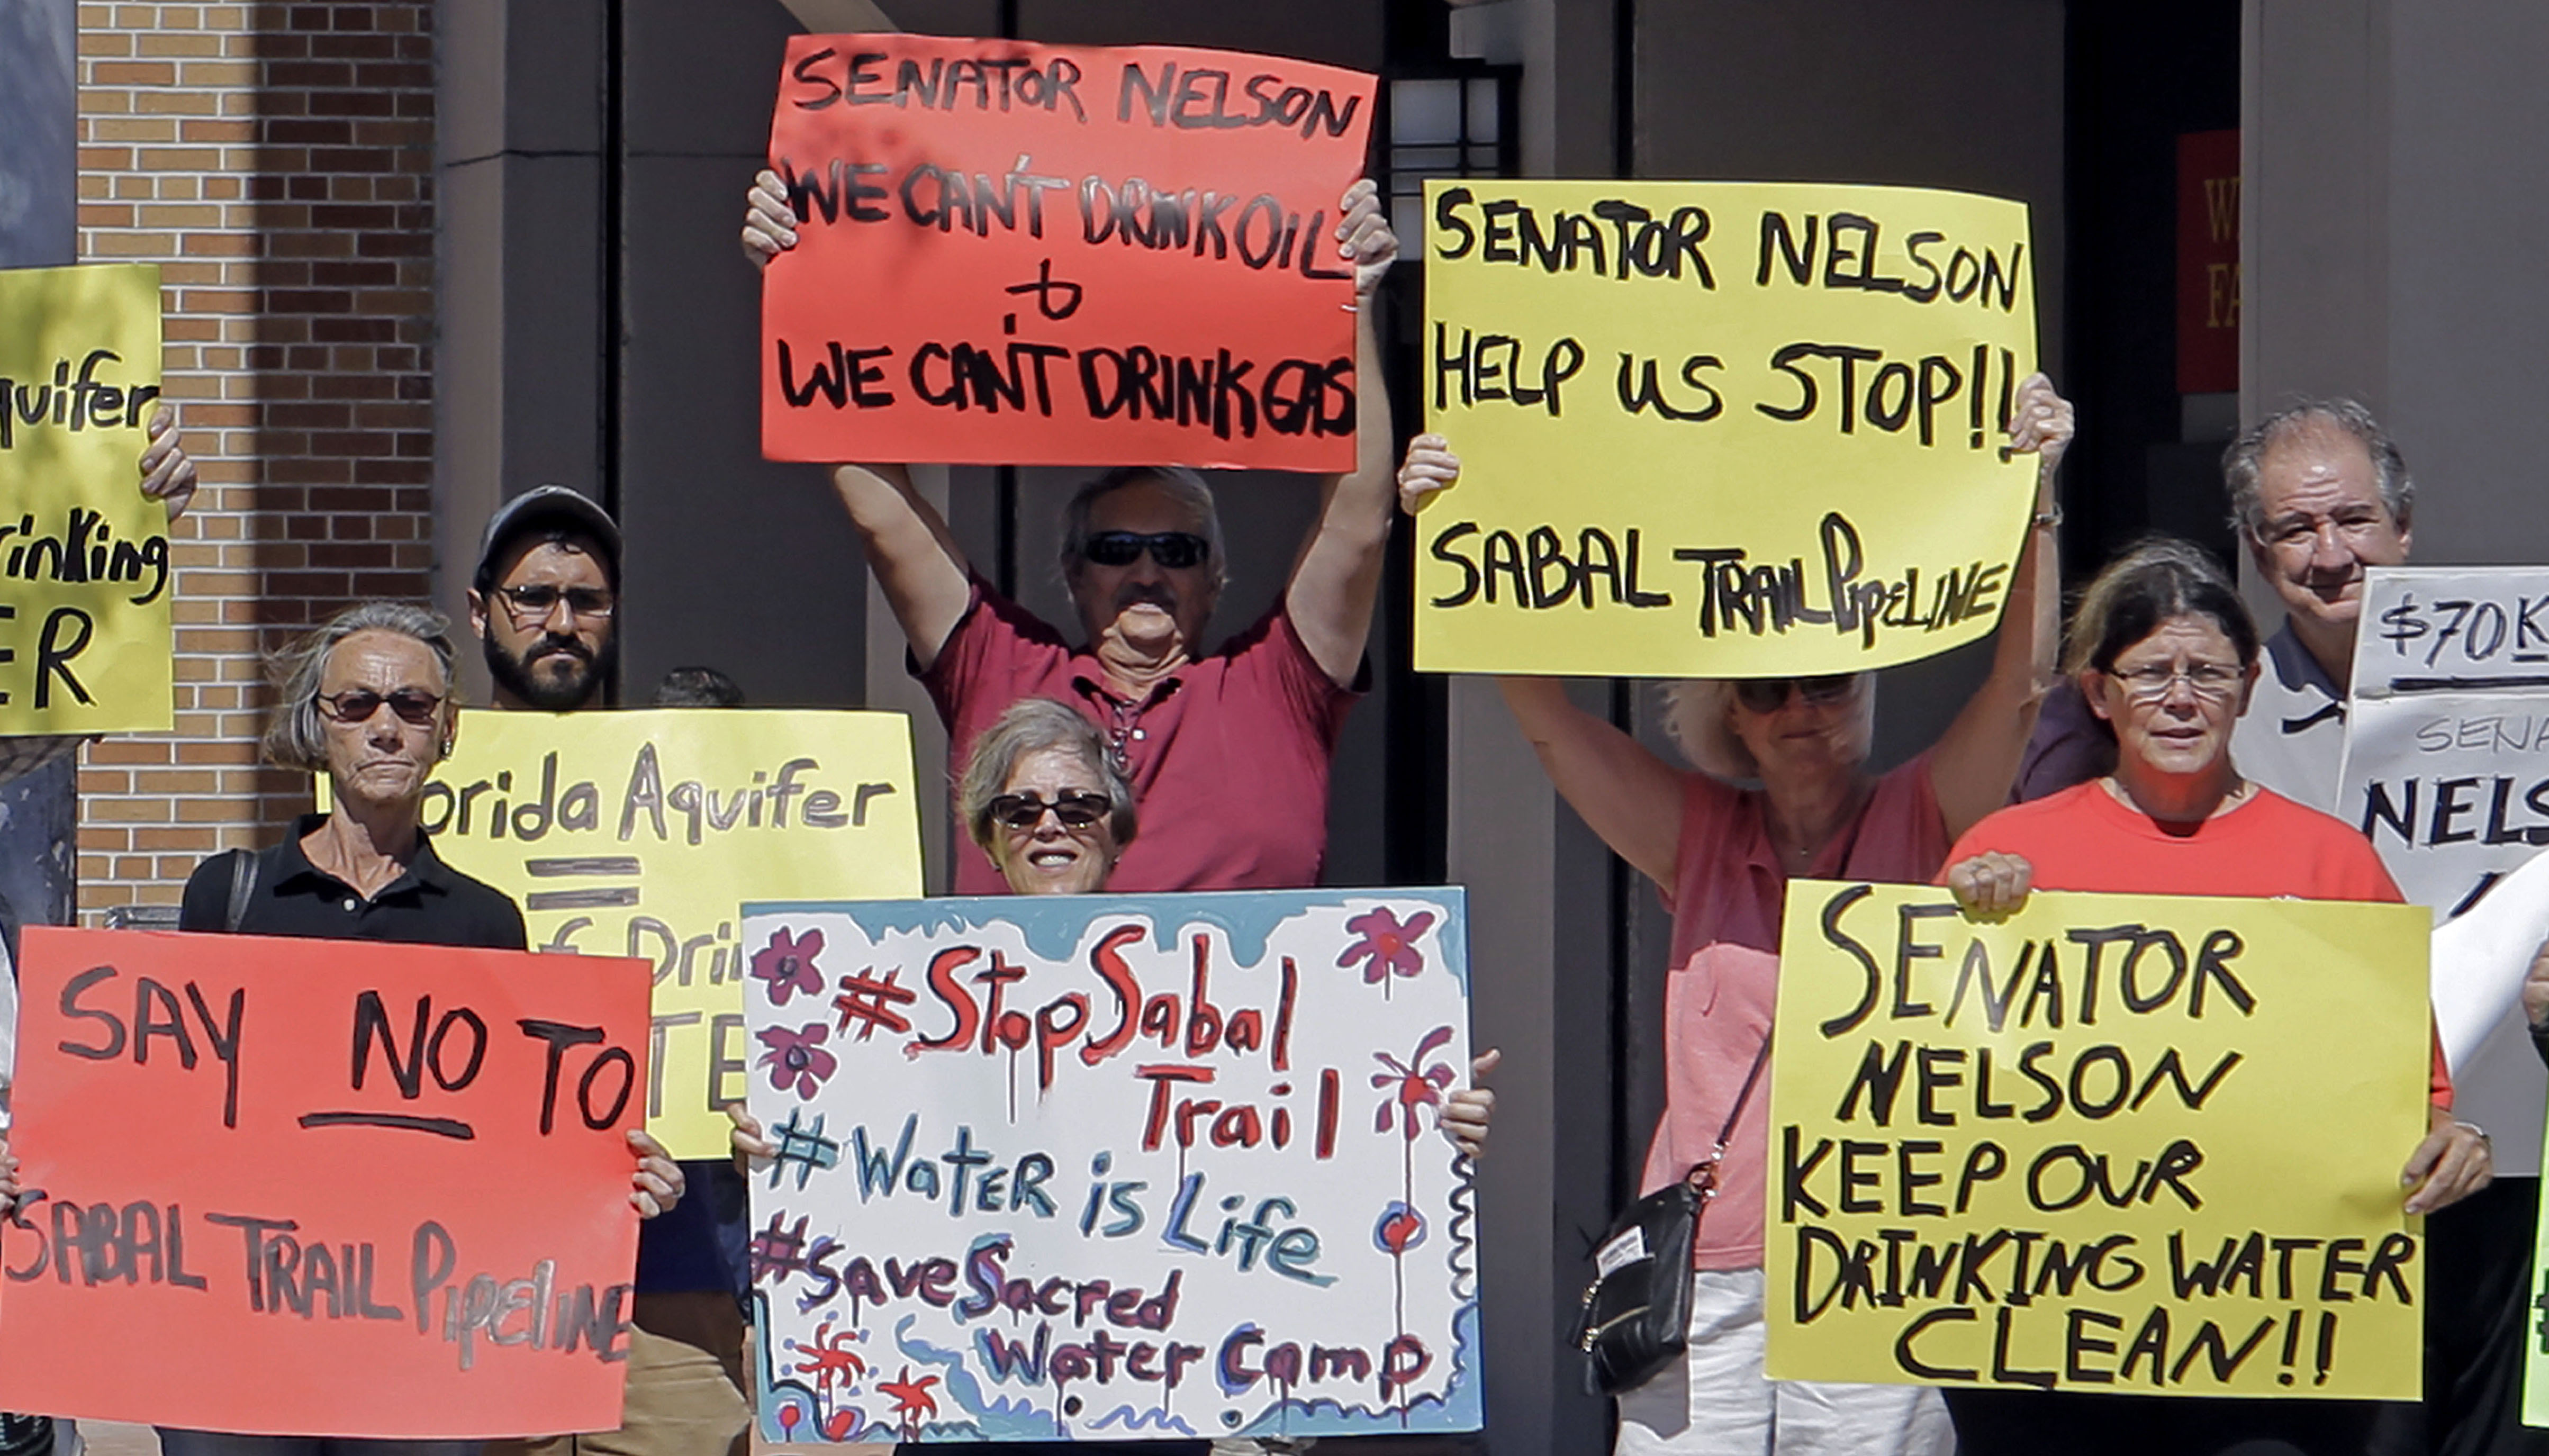 Community activists hold signs as they protest the Sabal Trail pipeline, in front of the office of U.S. Sen. Bill Nelson, Tuesday, Feb. 14, 2017, in Coral Gables, Fla. The Sabal Trail is an underground natural gas pipeline project that originates in Alabama, stretches through Georgia and terminates in Florida. (AP Photo/Alan Diaz)